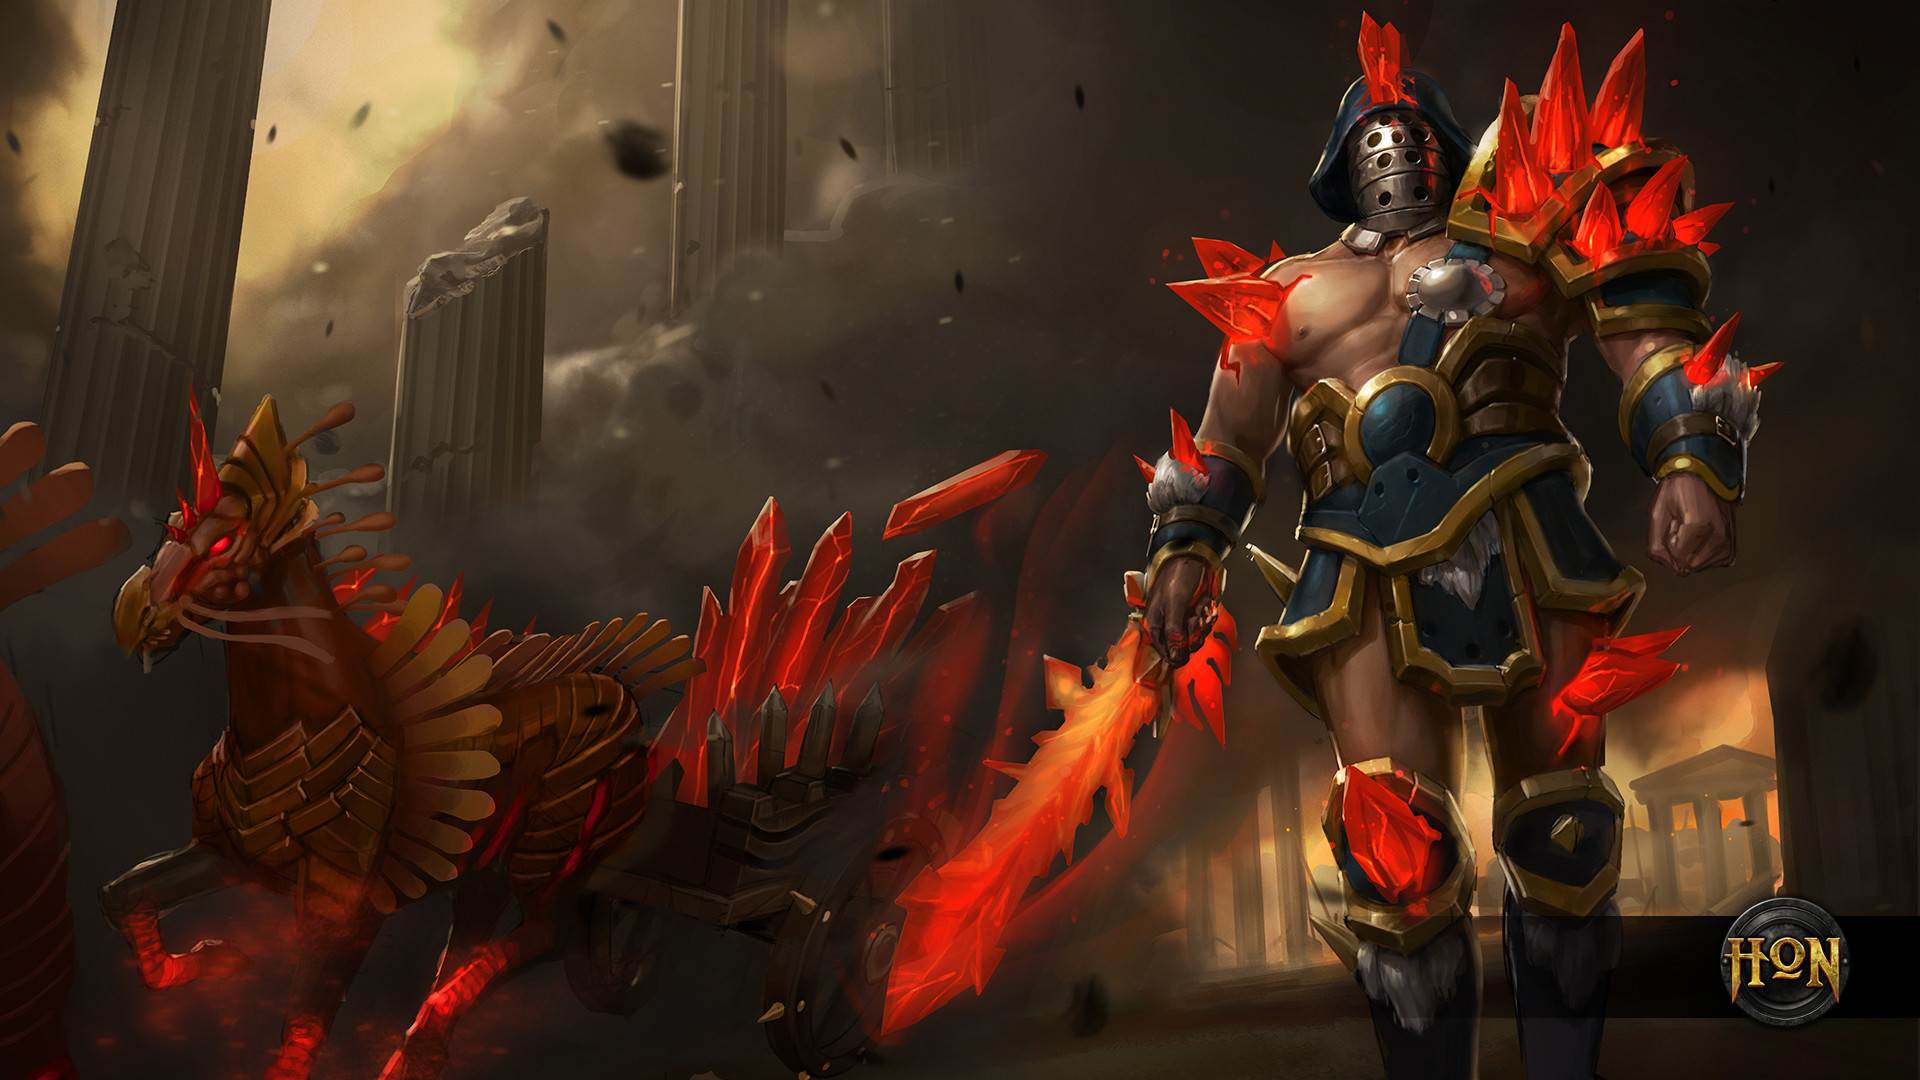 Res: 1920x1080, 0 1920x1200 Painting gladiator wallpaper 125157 WallpaperUP   Riftshards Gladiator Wallpaper Heroes of Newerth Lore